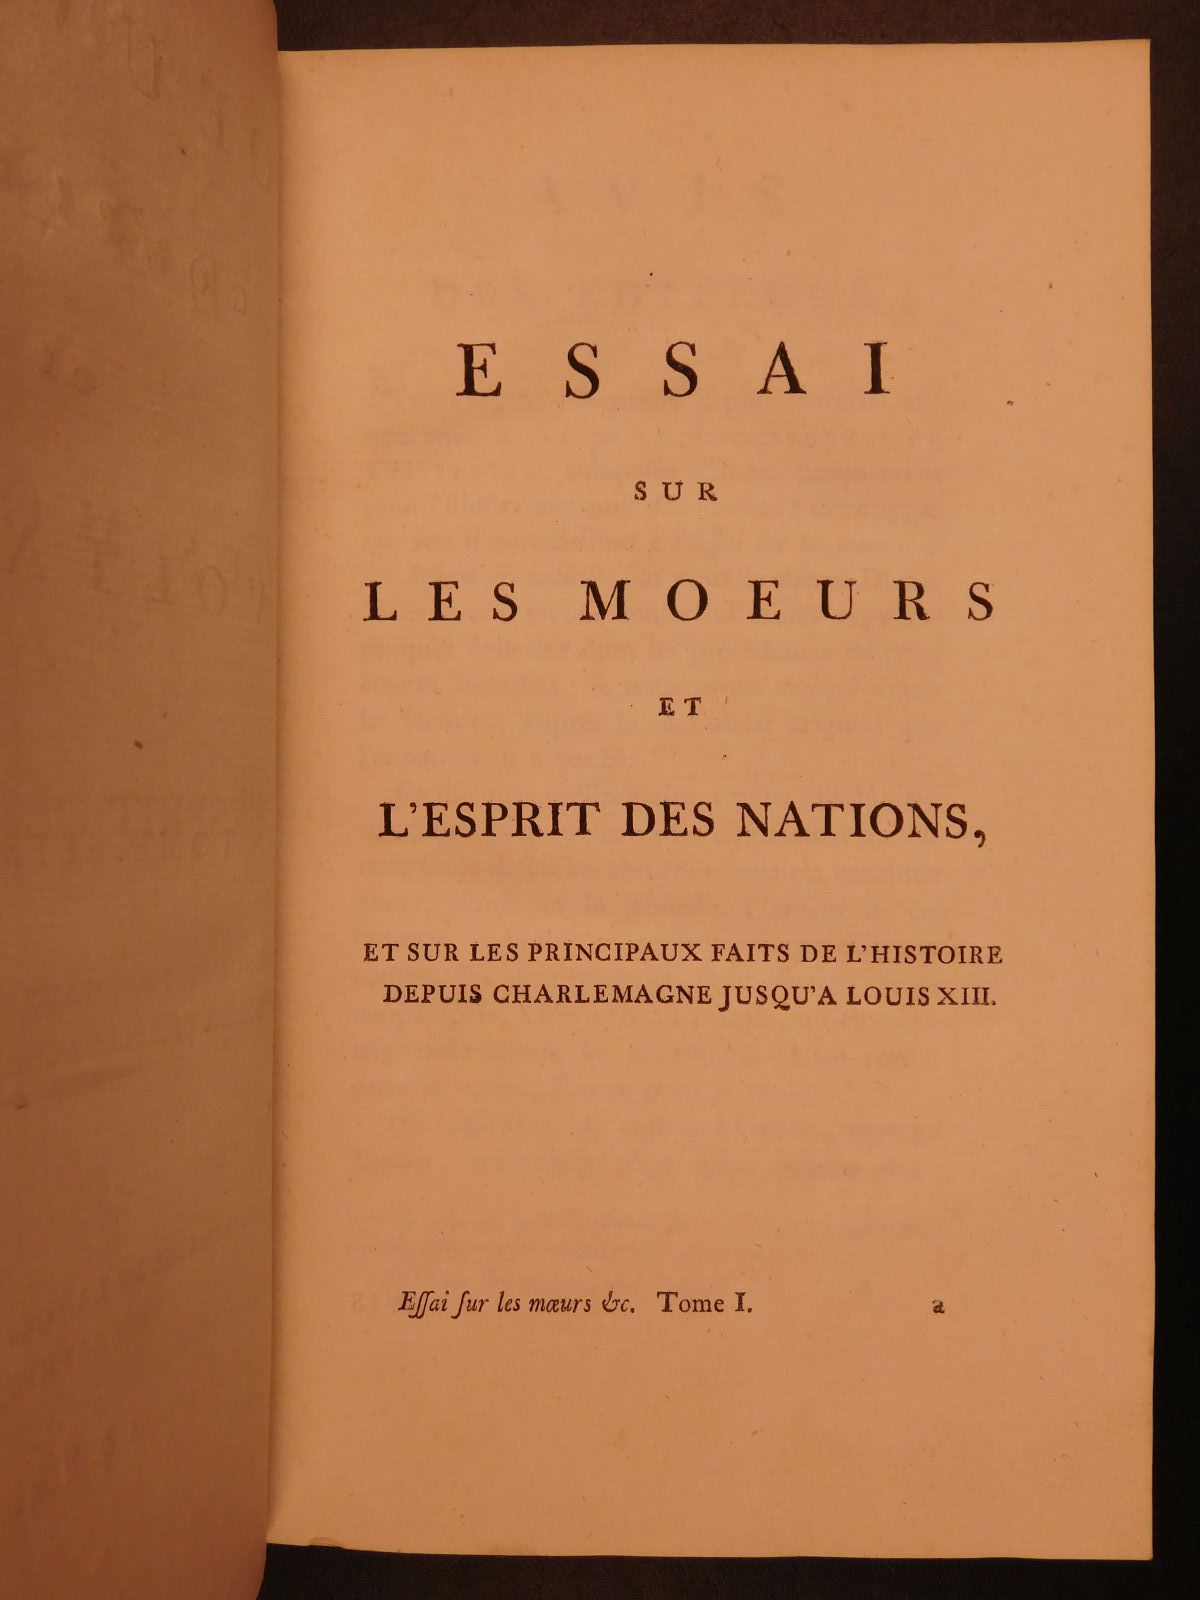 voltaire essay on the manner and spirit of nations An essay on universal history, the manners and spirit of nations from the reign of charlemaign to the age of lewis xiv:and manners that became the essai sur les moeurs, and plunged into biblical exegesis mme du châtelet herself wrote an examen, highly critical of the two testaments it was at cirey that voltaire, rounding out his.